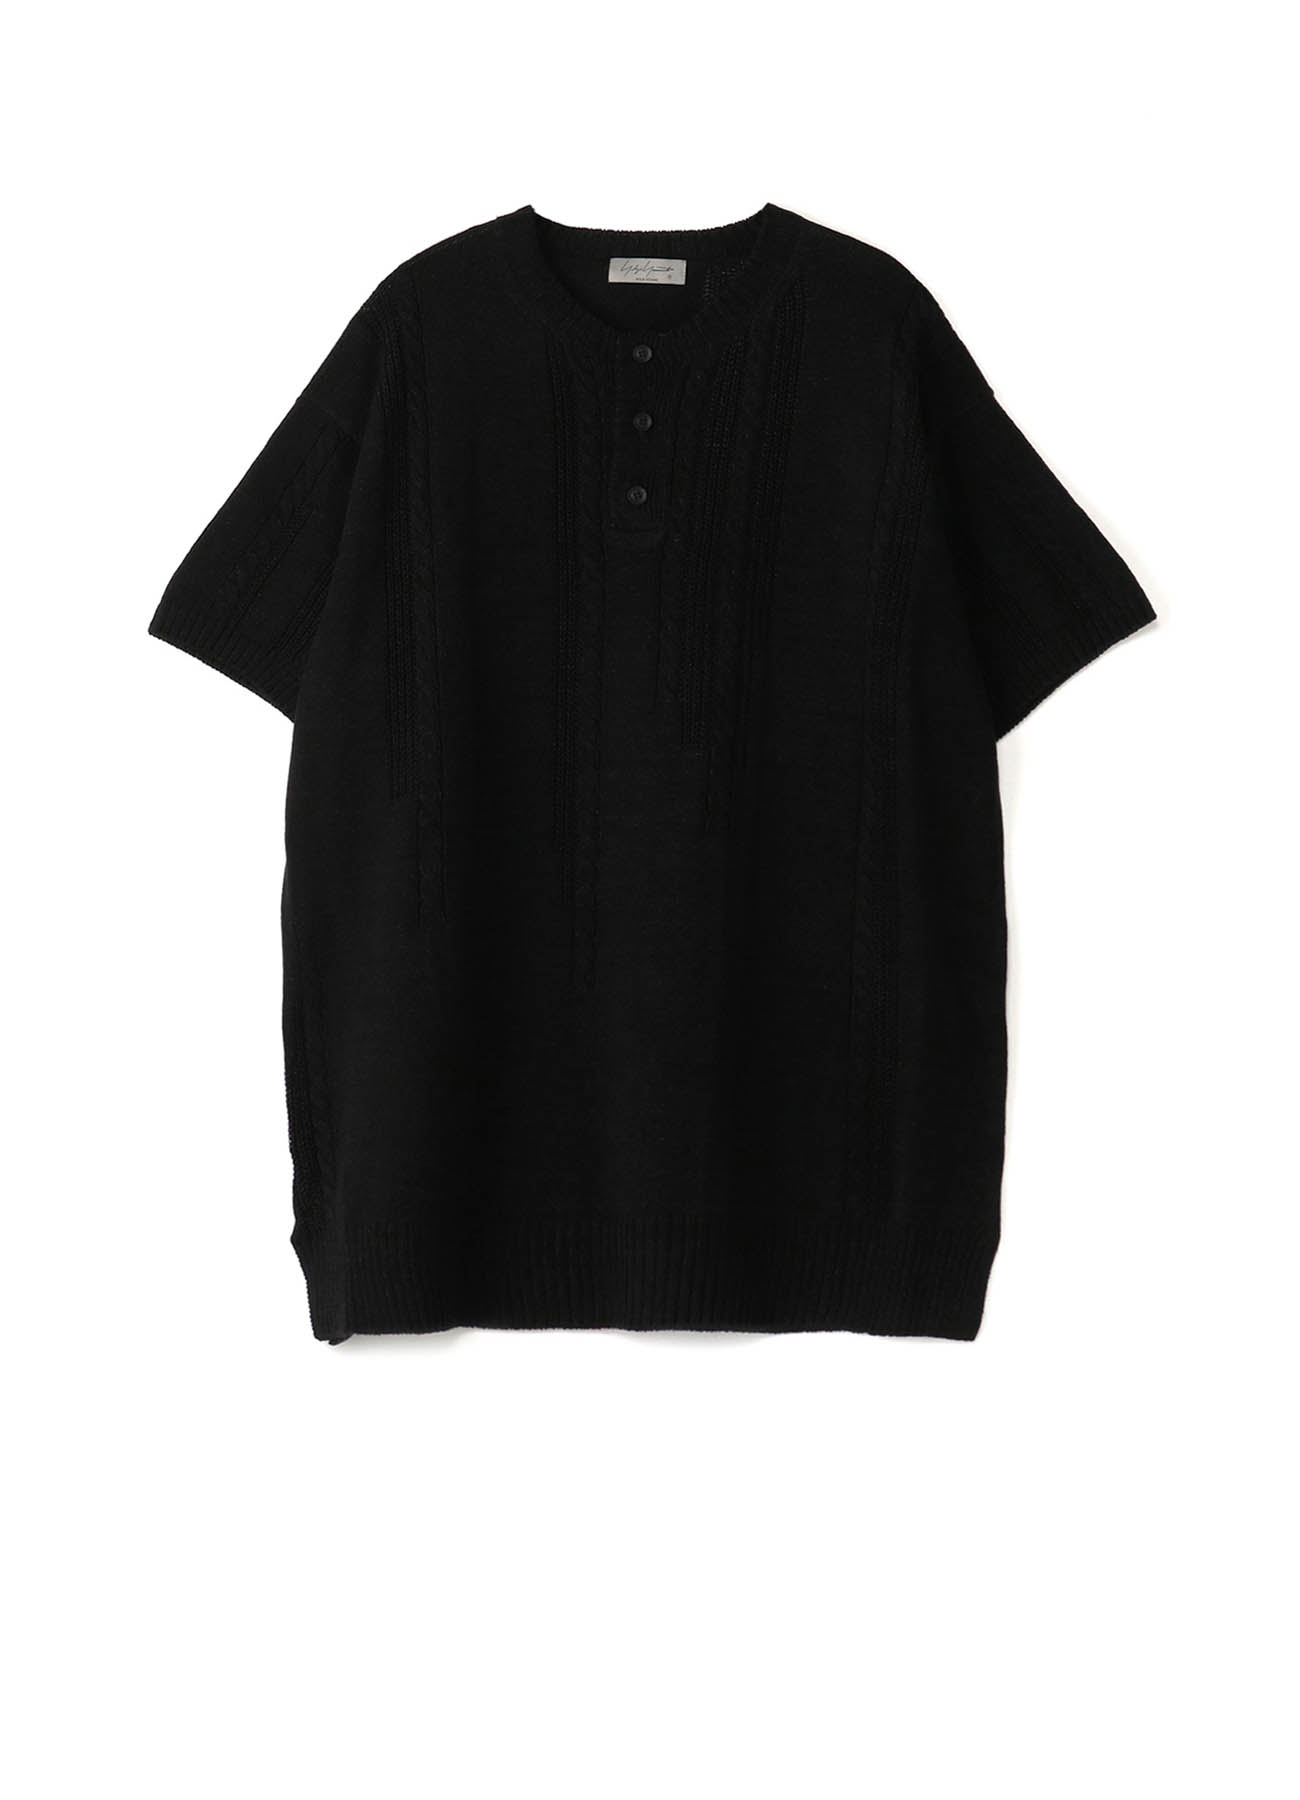 7G FISHERMAN CLOTH HENLEY SHORT SLEEVES